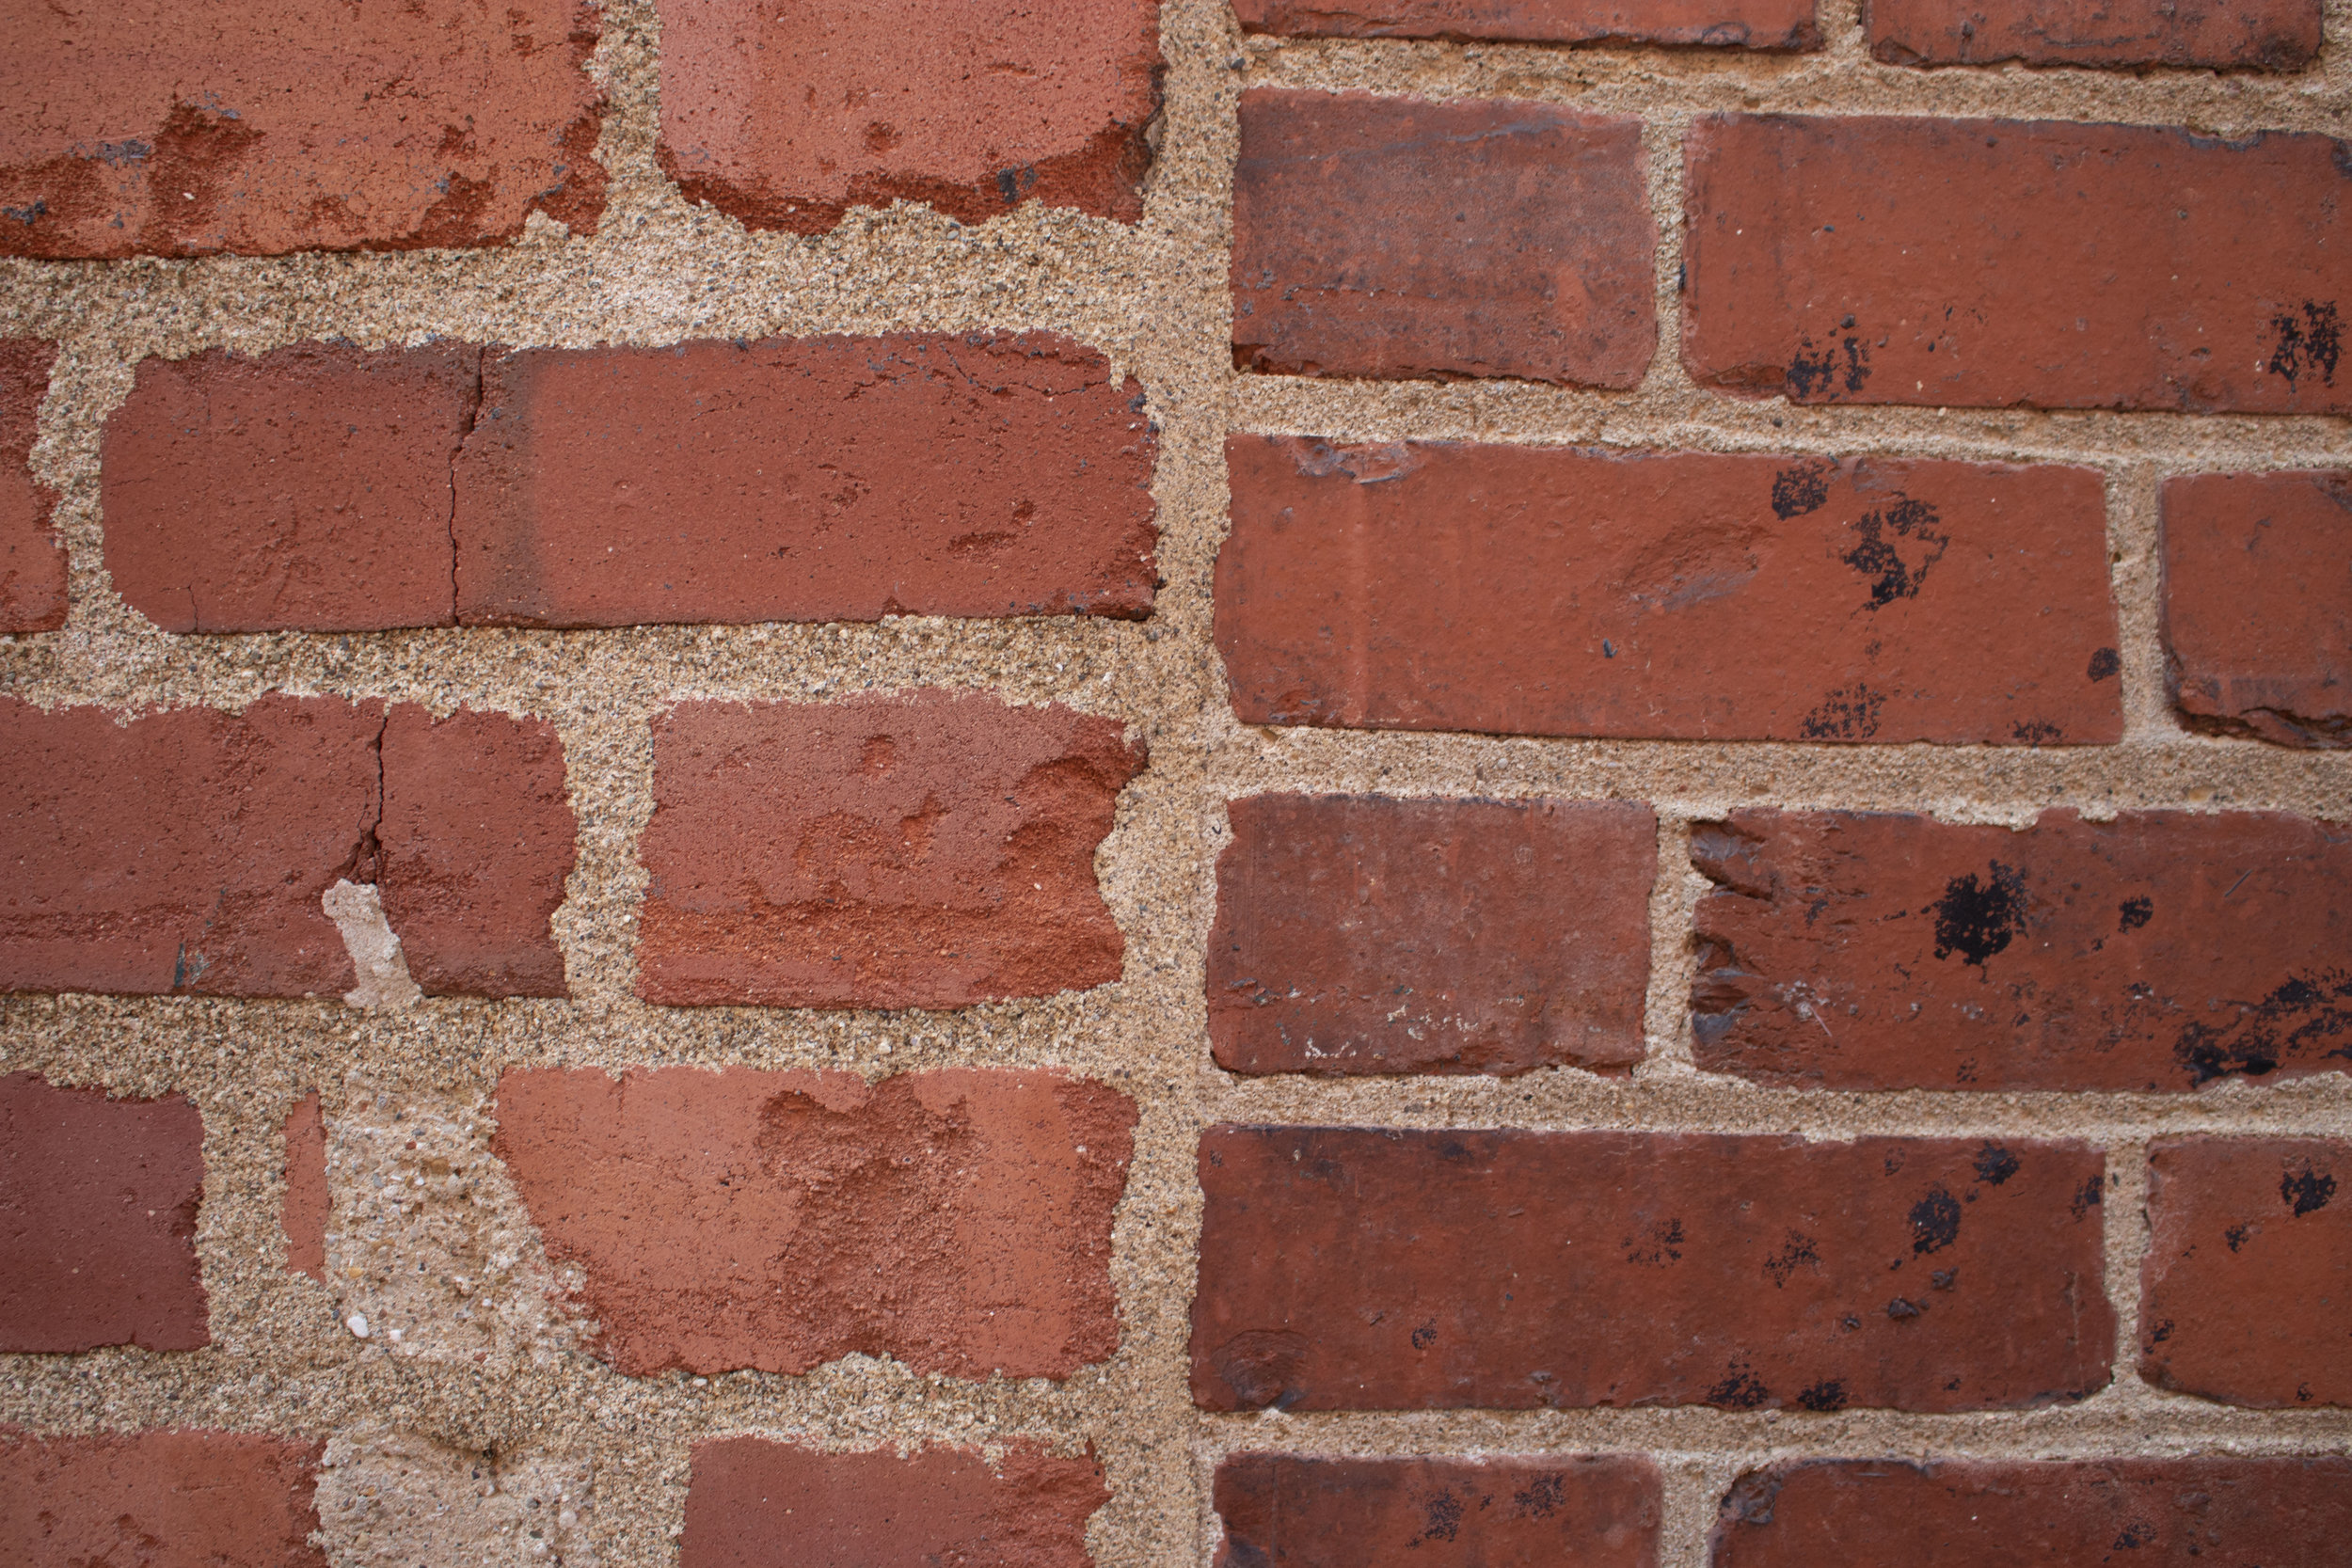 This image illustrates what happens when all the mortar AND a tiny bit of brick are removed to get a fresh surface to point. On the left, this has happened repeatedly to the bricks, which is why the mortar joints on the left are so much bigger than the joints of the younger bricks on the right. When the brick is shaved down each time the wall gets new mortar, the bricks shrink over time.